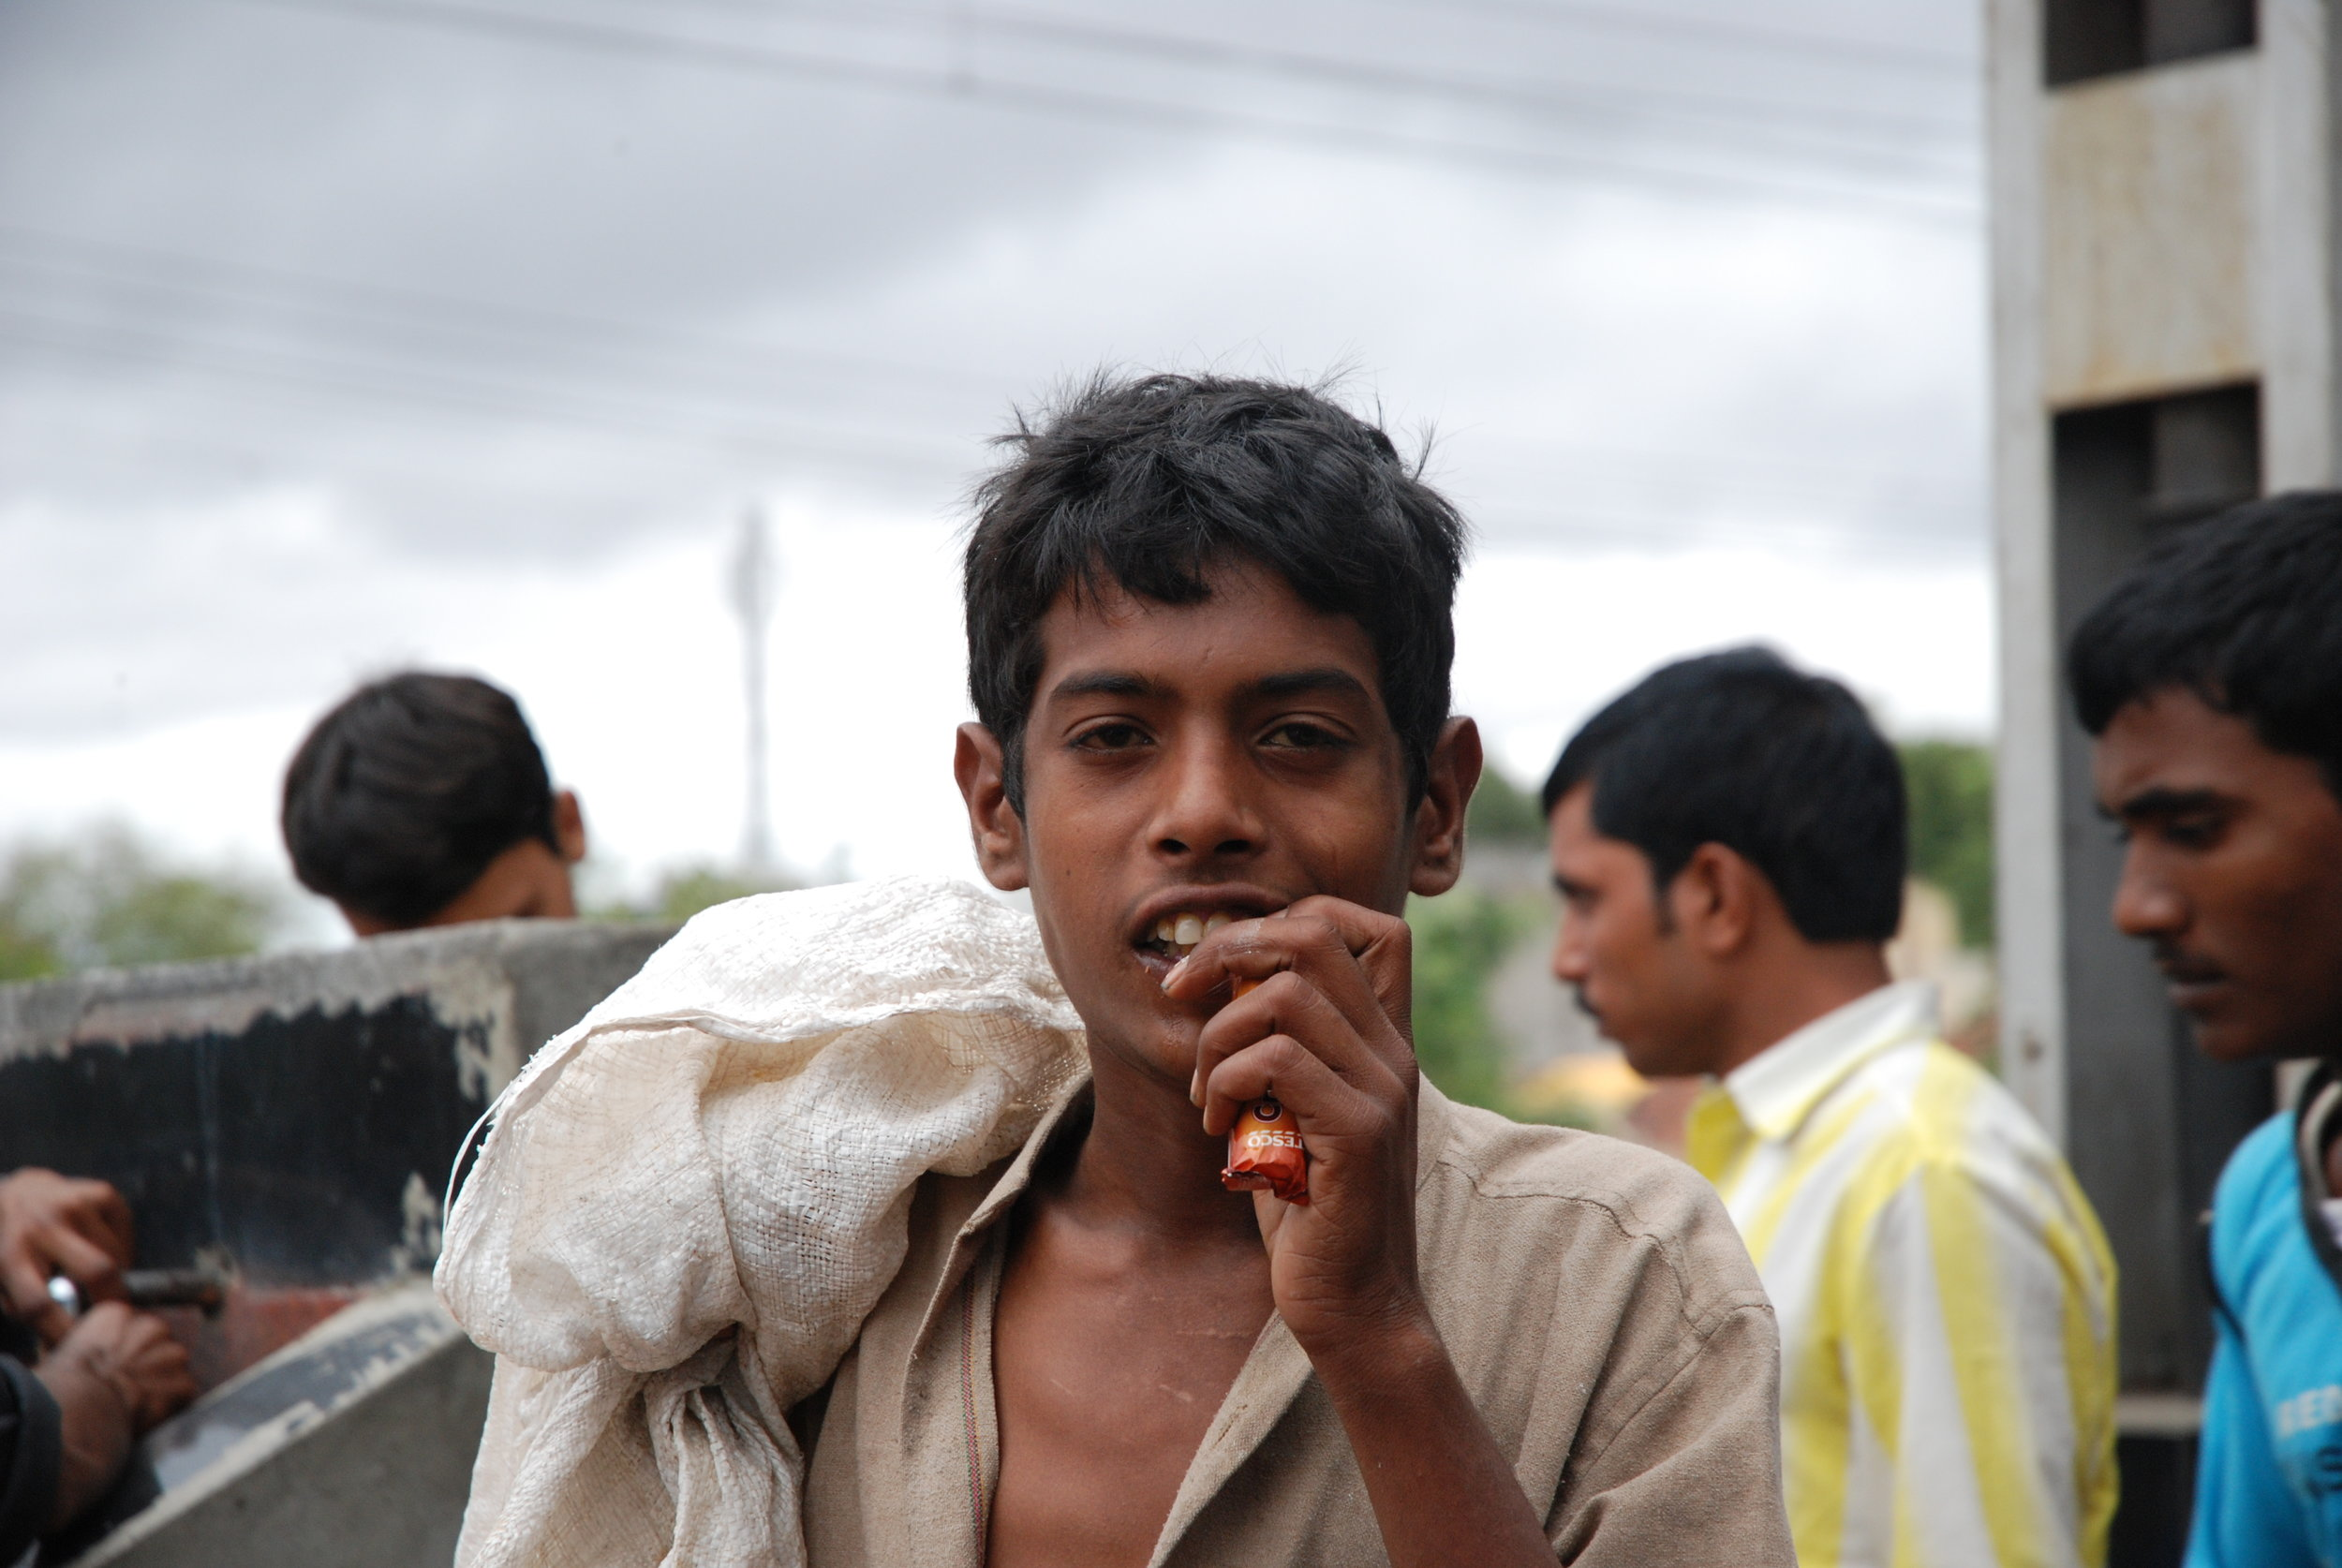 Young poor man on platform - great picture.JPG